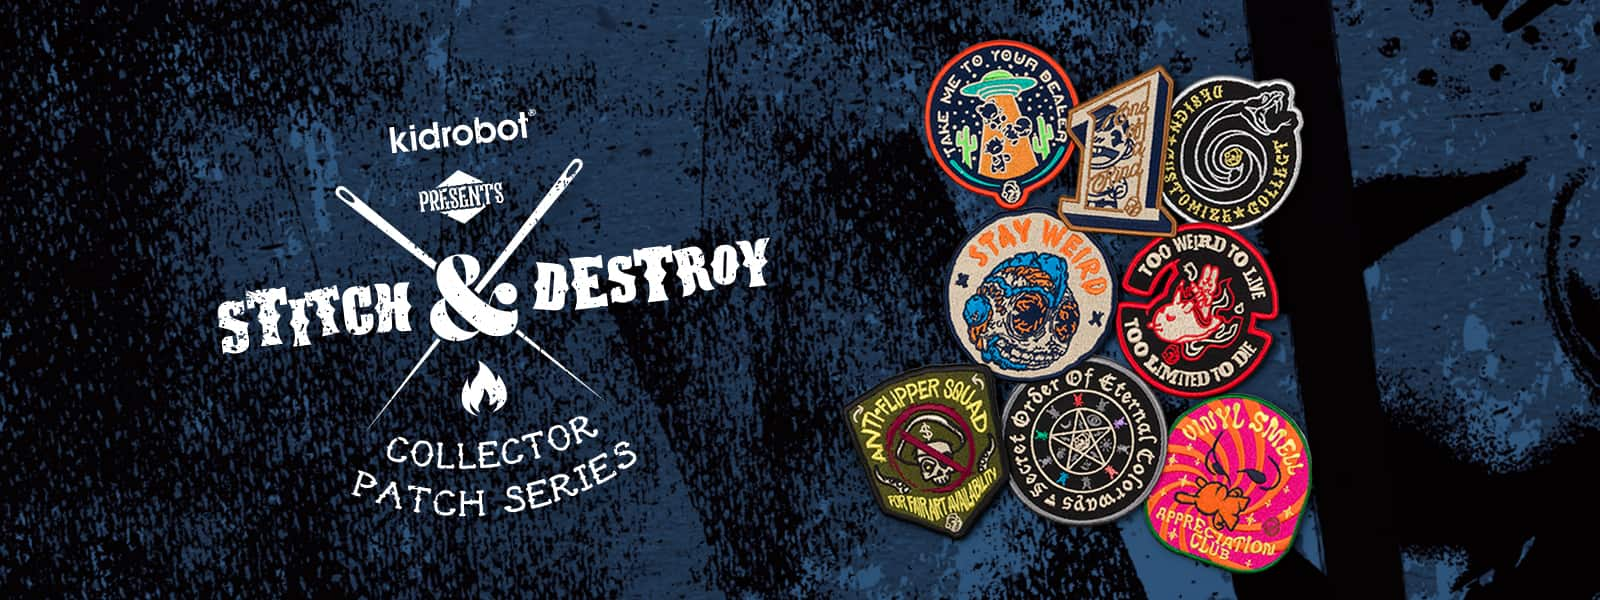 Kidrobot Stitch & Destroy Patches